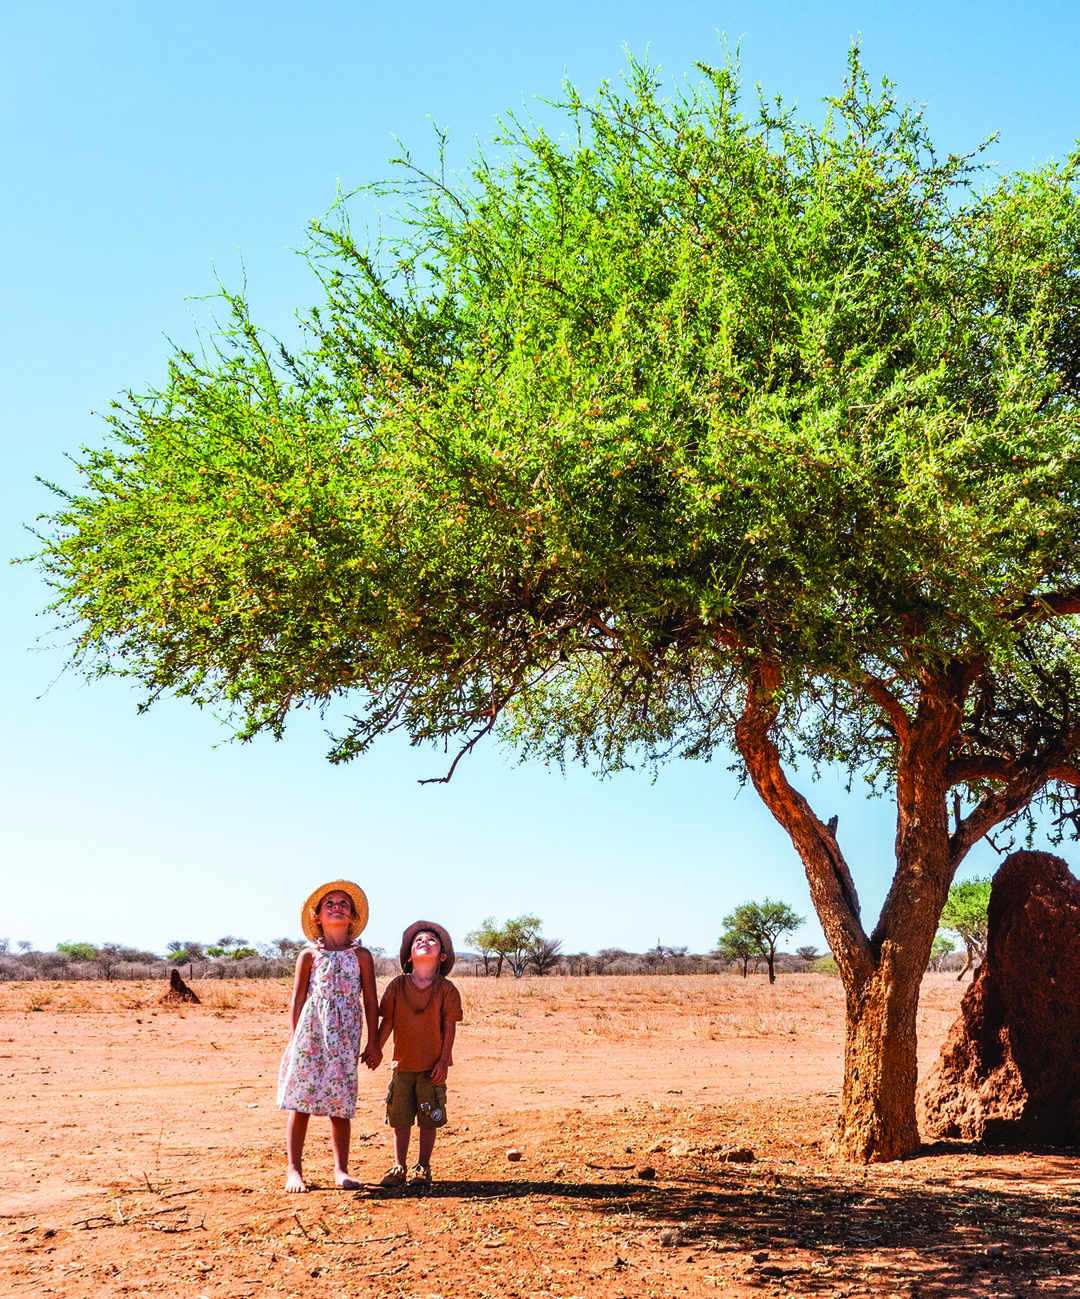 Page 34 of The World is Big when you are Small - The most memorable experiences in Namibia